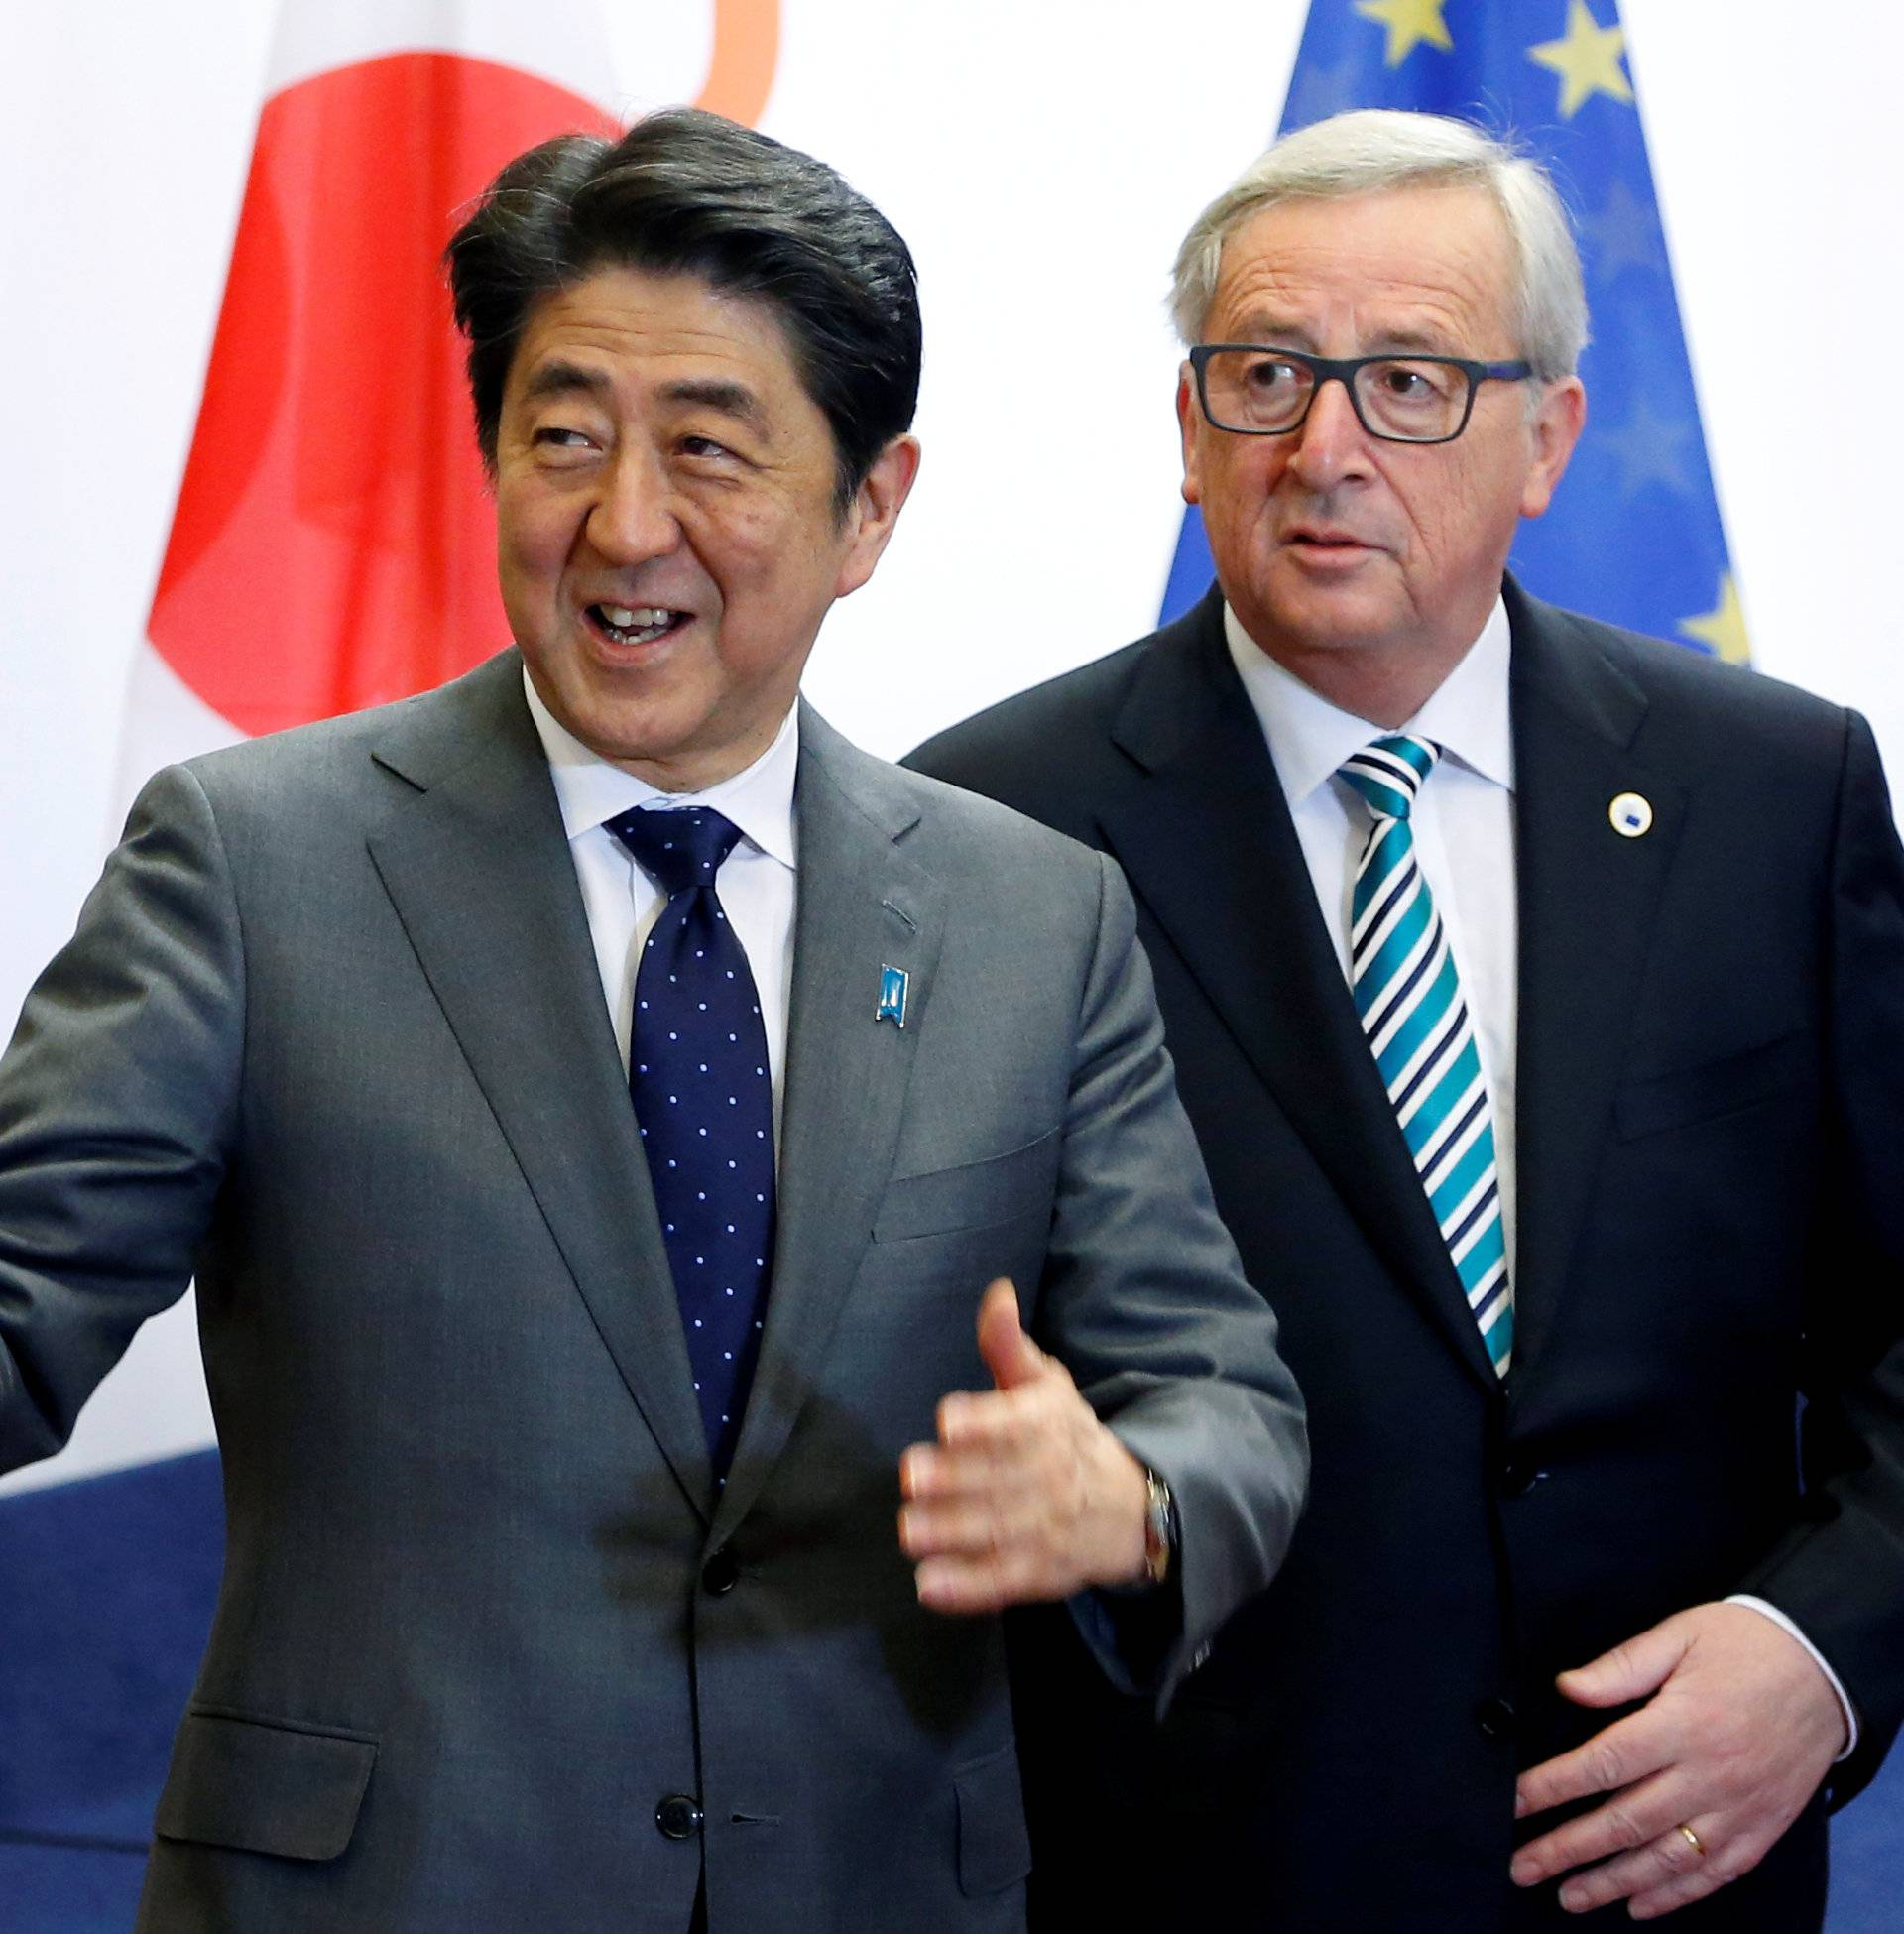 Japan's Prime Minister Shinzo Abe gestures beside European Commission President Jean-Claude Juncker before a working dinner at the EU Council in Brussels